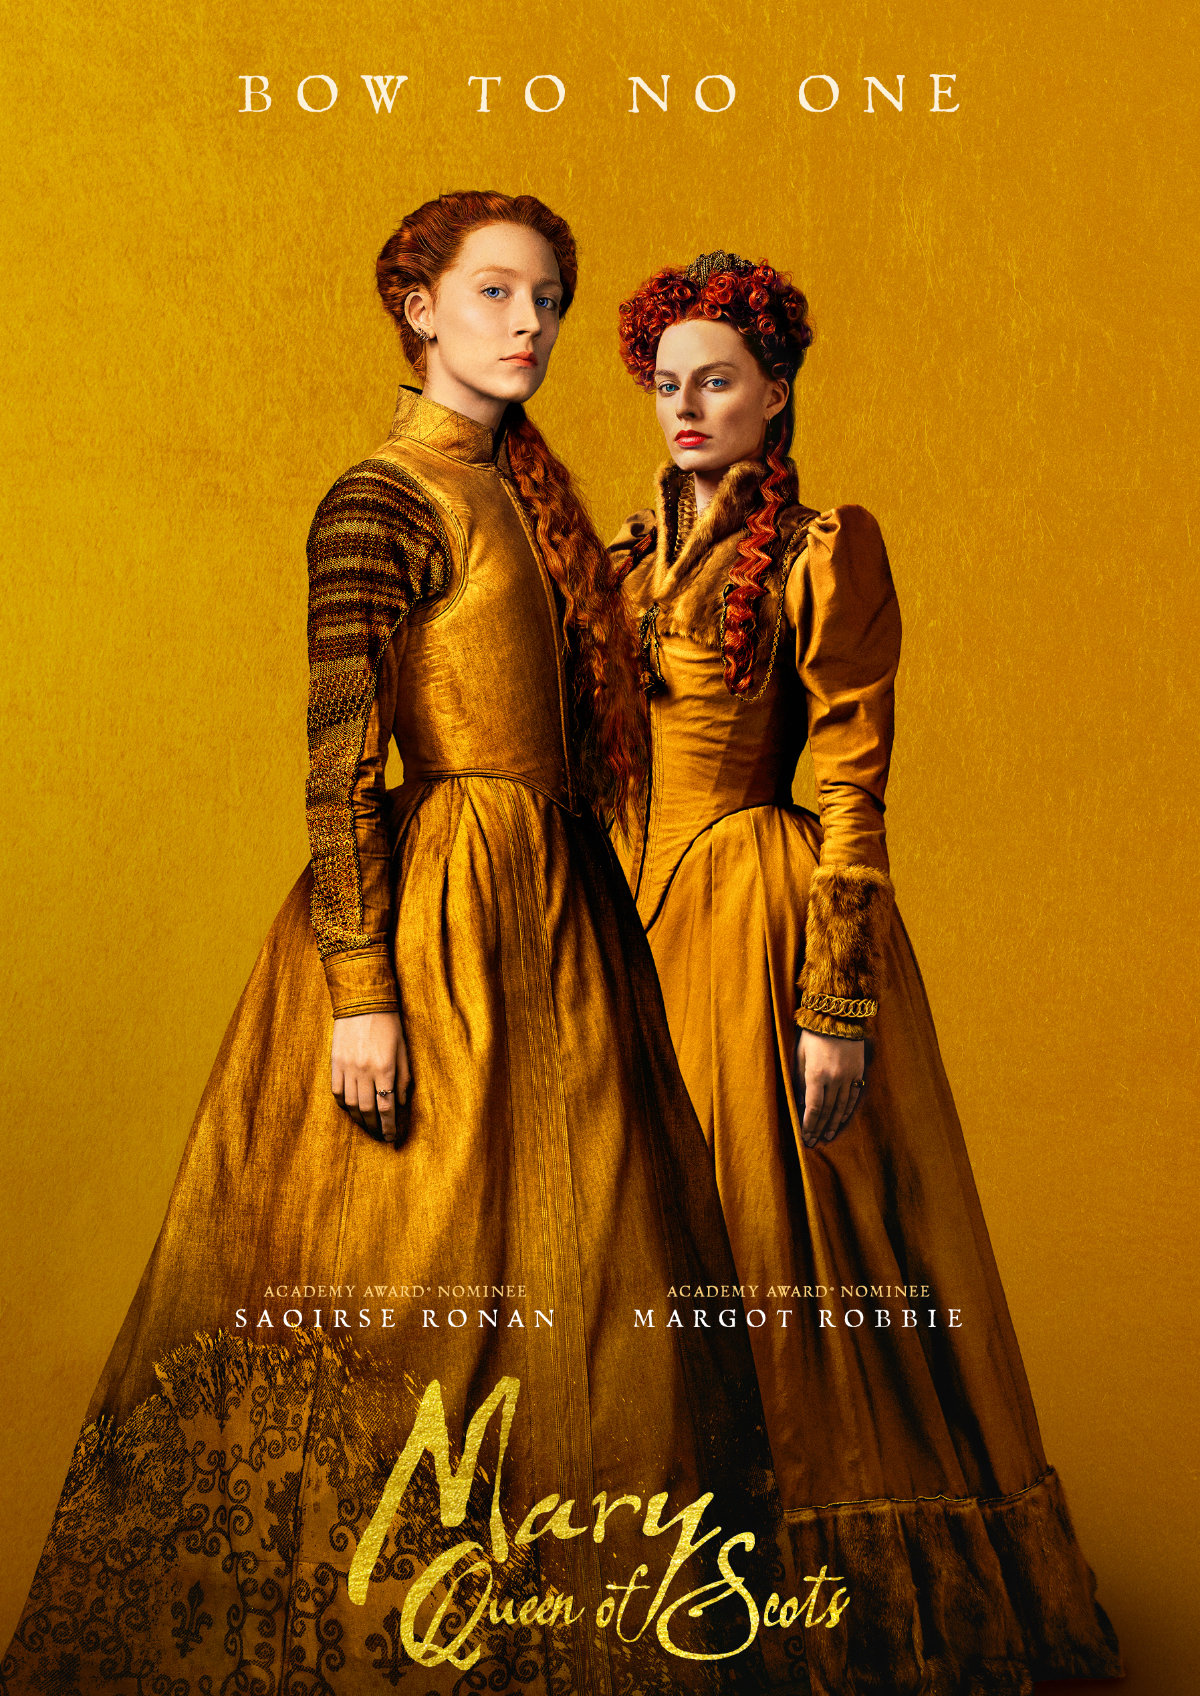 'Mary Queen Of Scots' movie poster